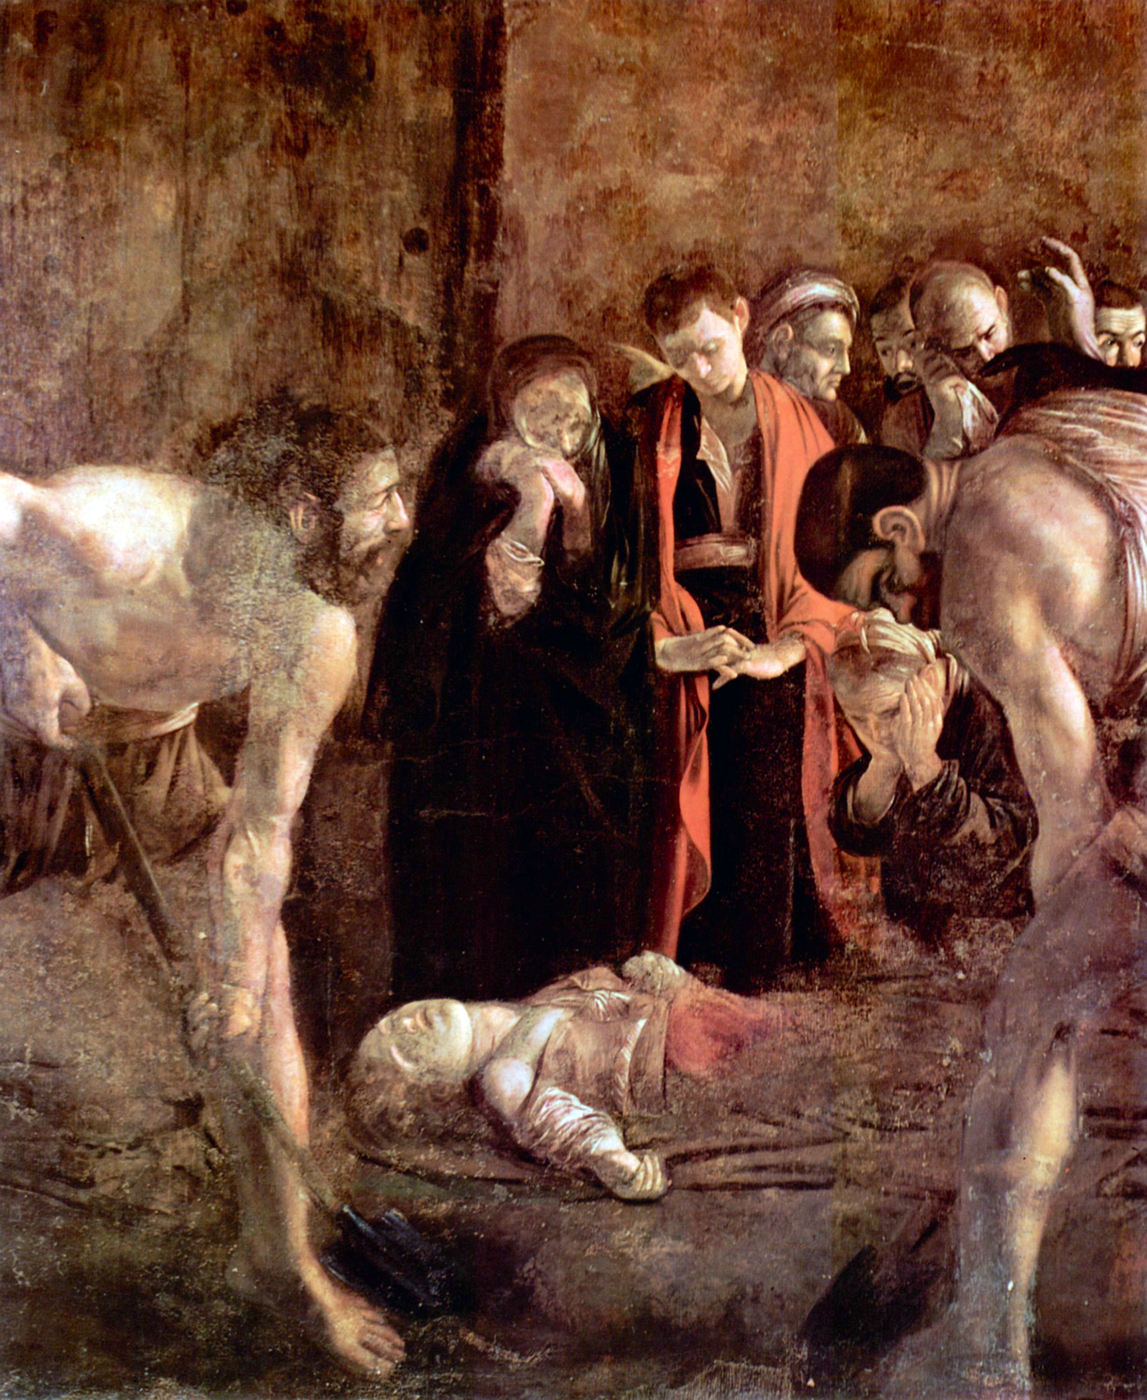 essay caravaggio The entombment of christ by caravaggio (c 1602) and jacopo da pontormo (c 1525) are two paintings that communicate the same message yet have a wide degree of disparity in expression.